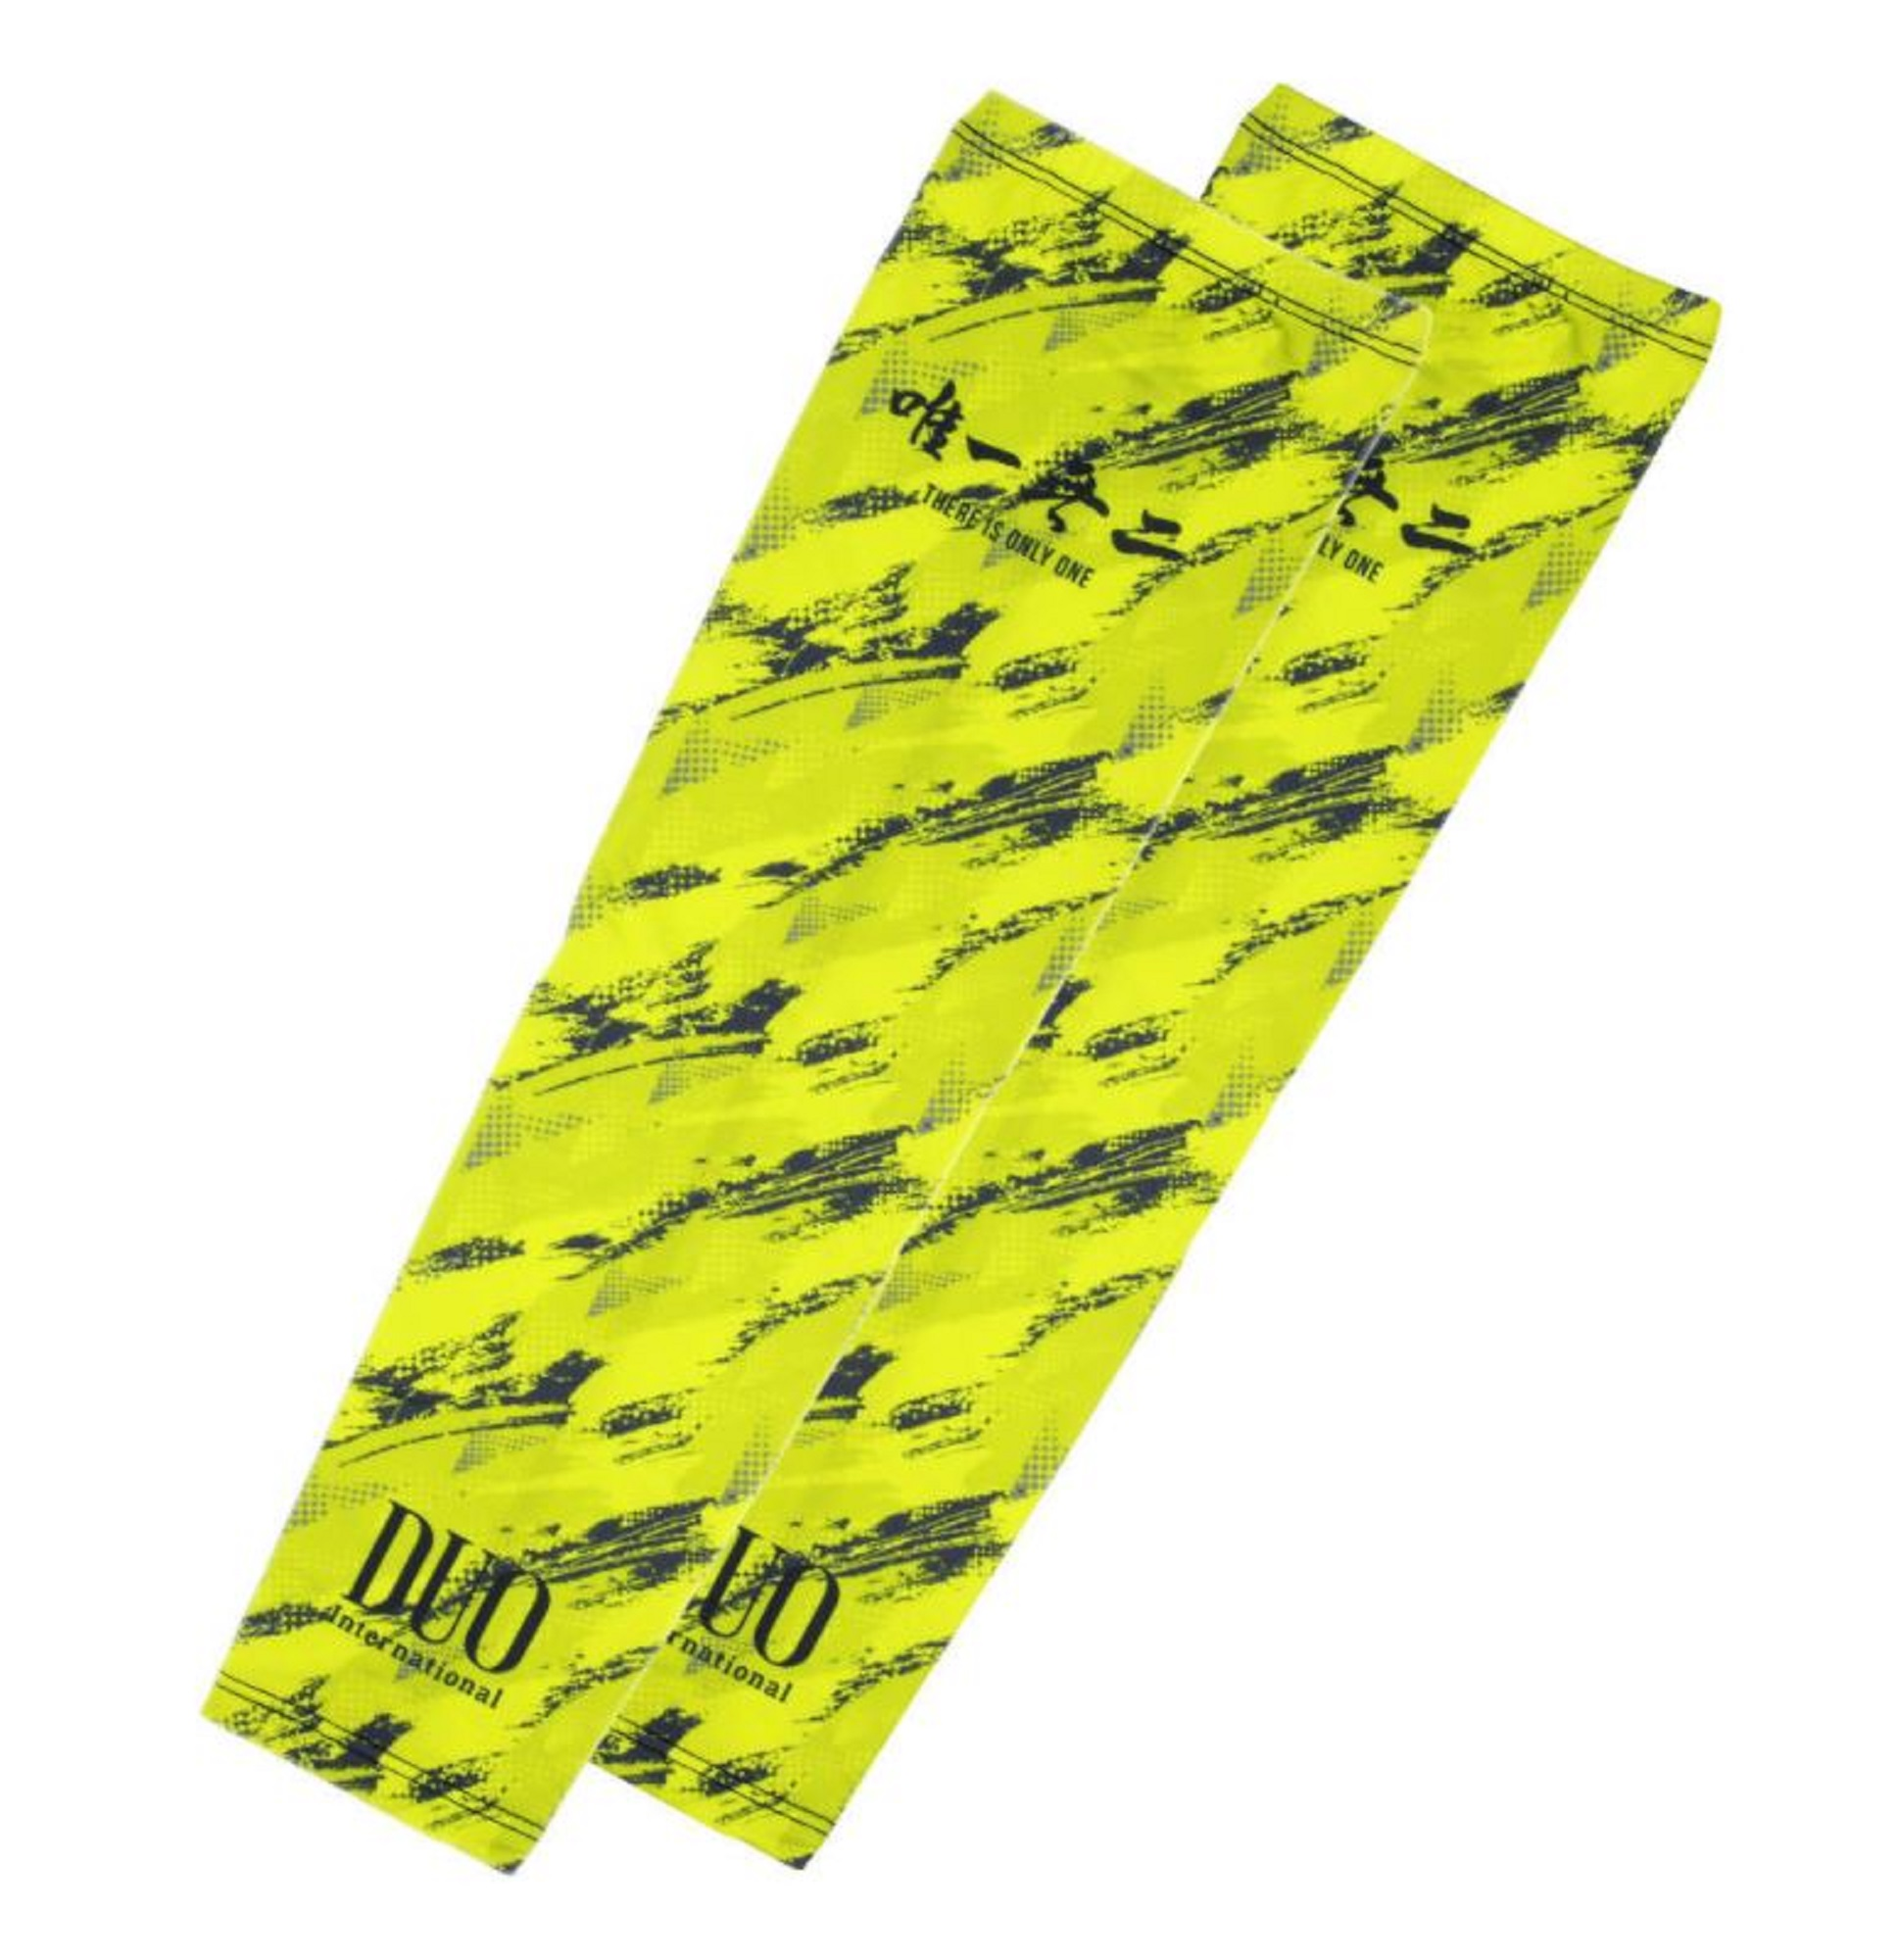 Duo Arm Sleeve Free Size Original Chart Geo (4524)